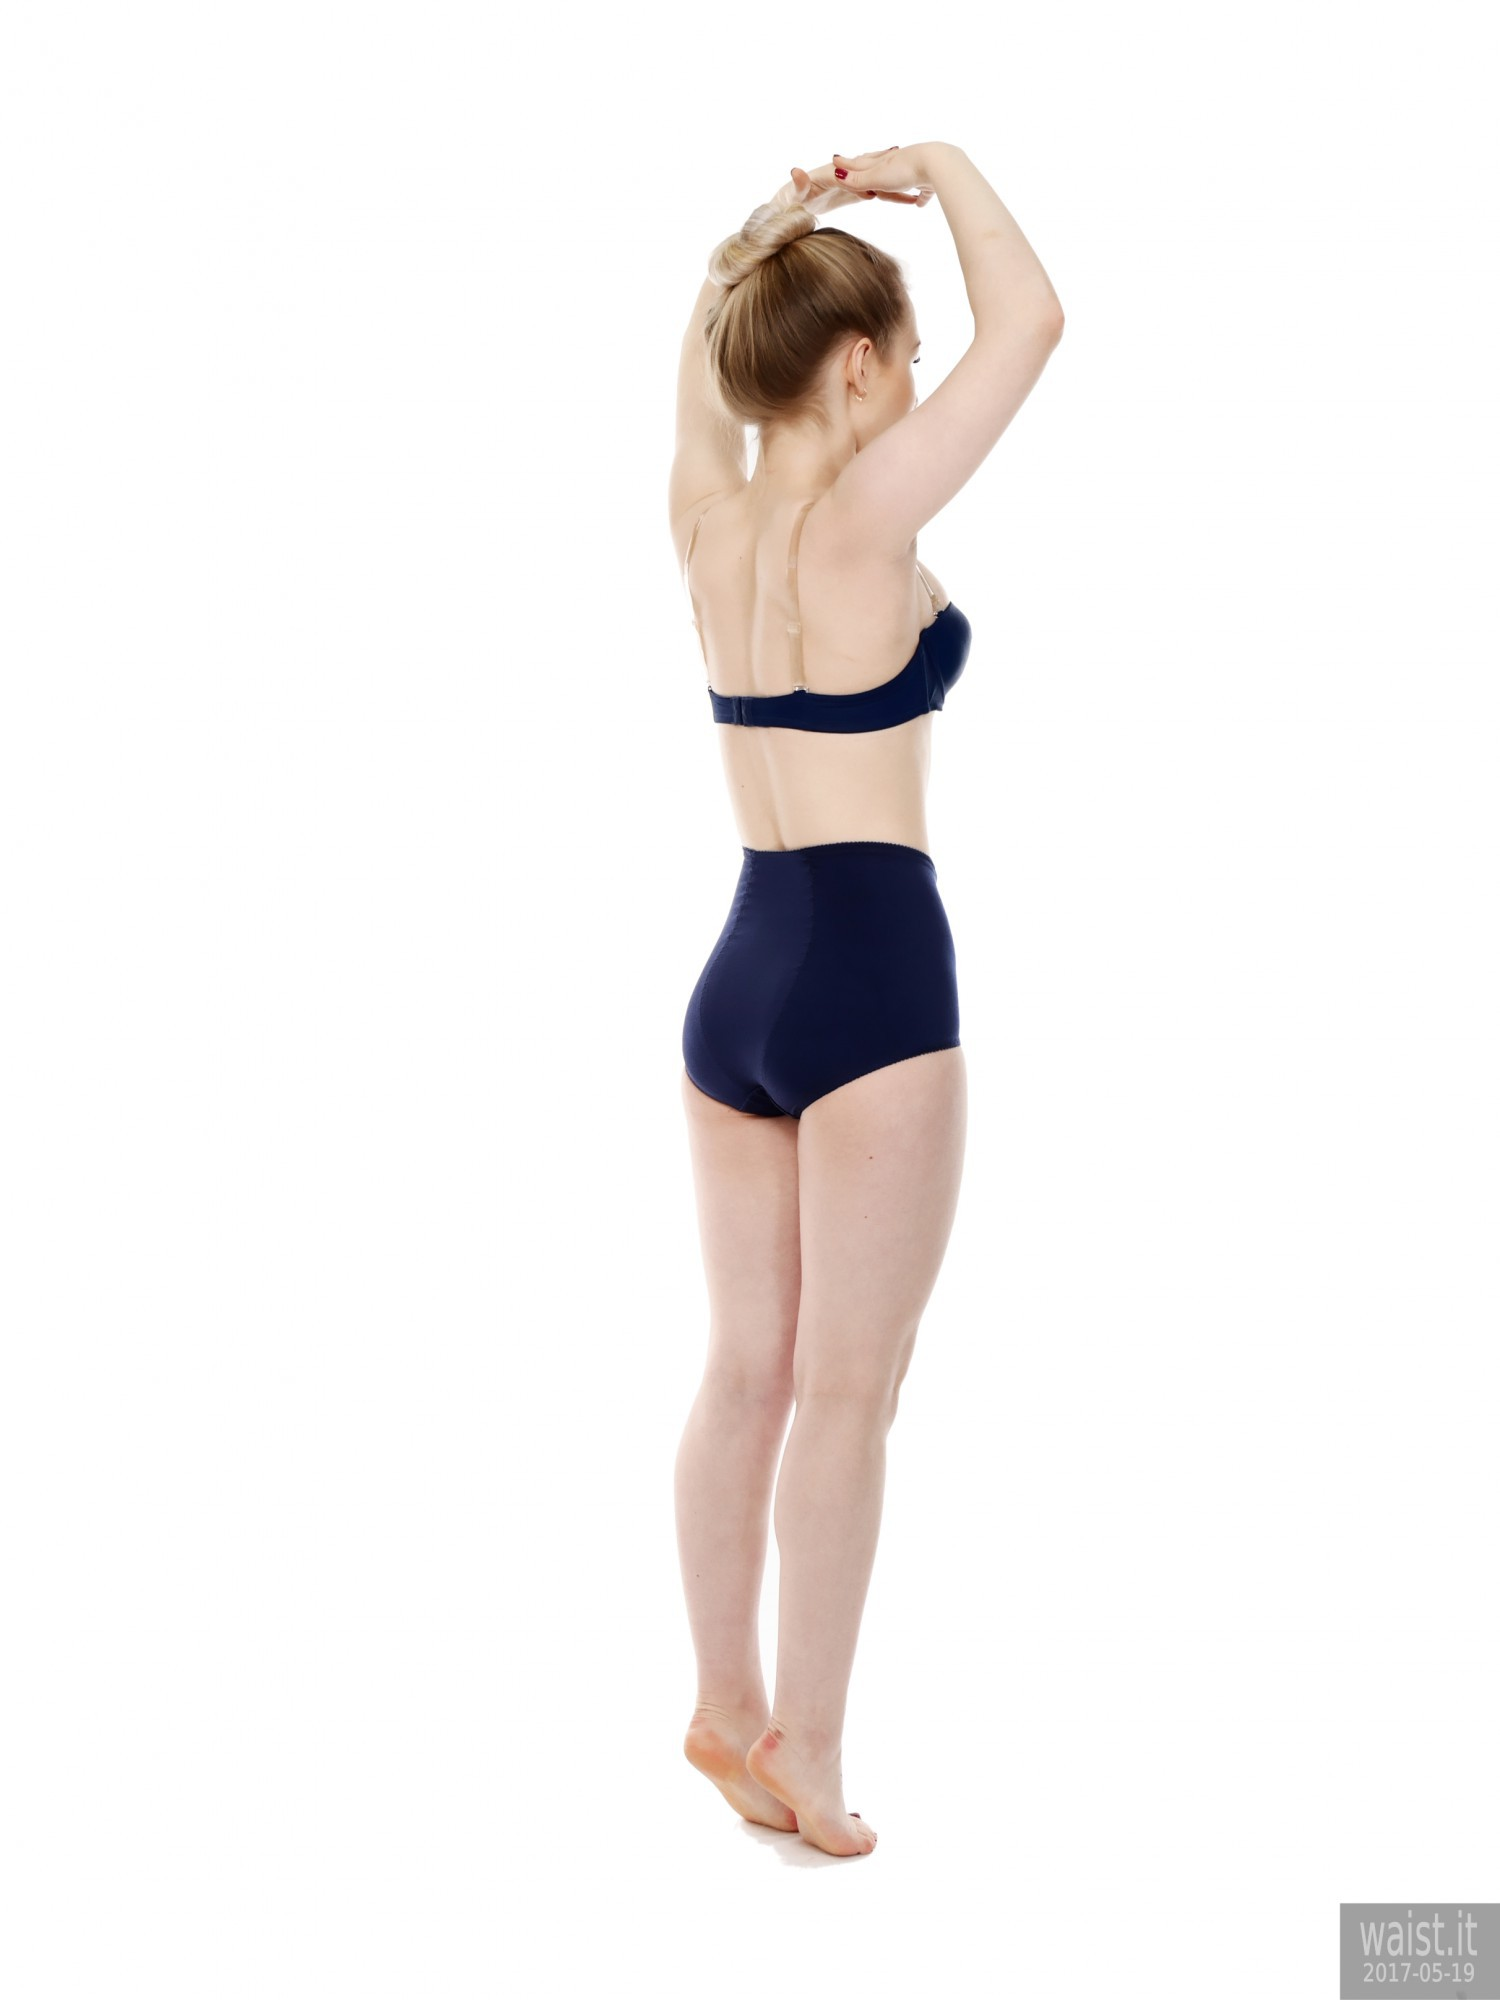 2017-05-19 Laura Sele blue Chinese bra and 1960's style pantie girdle